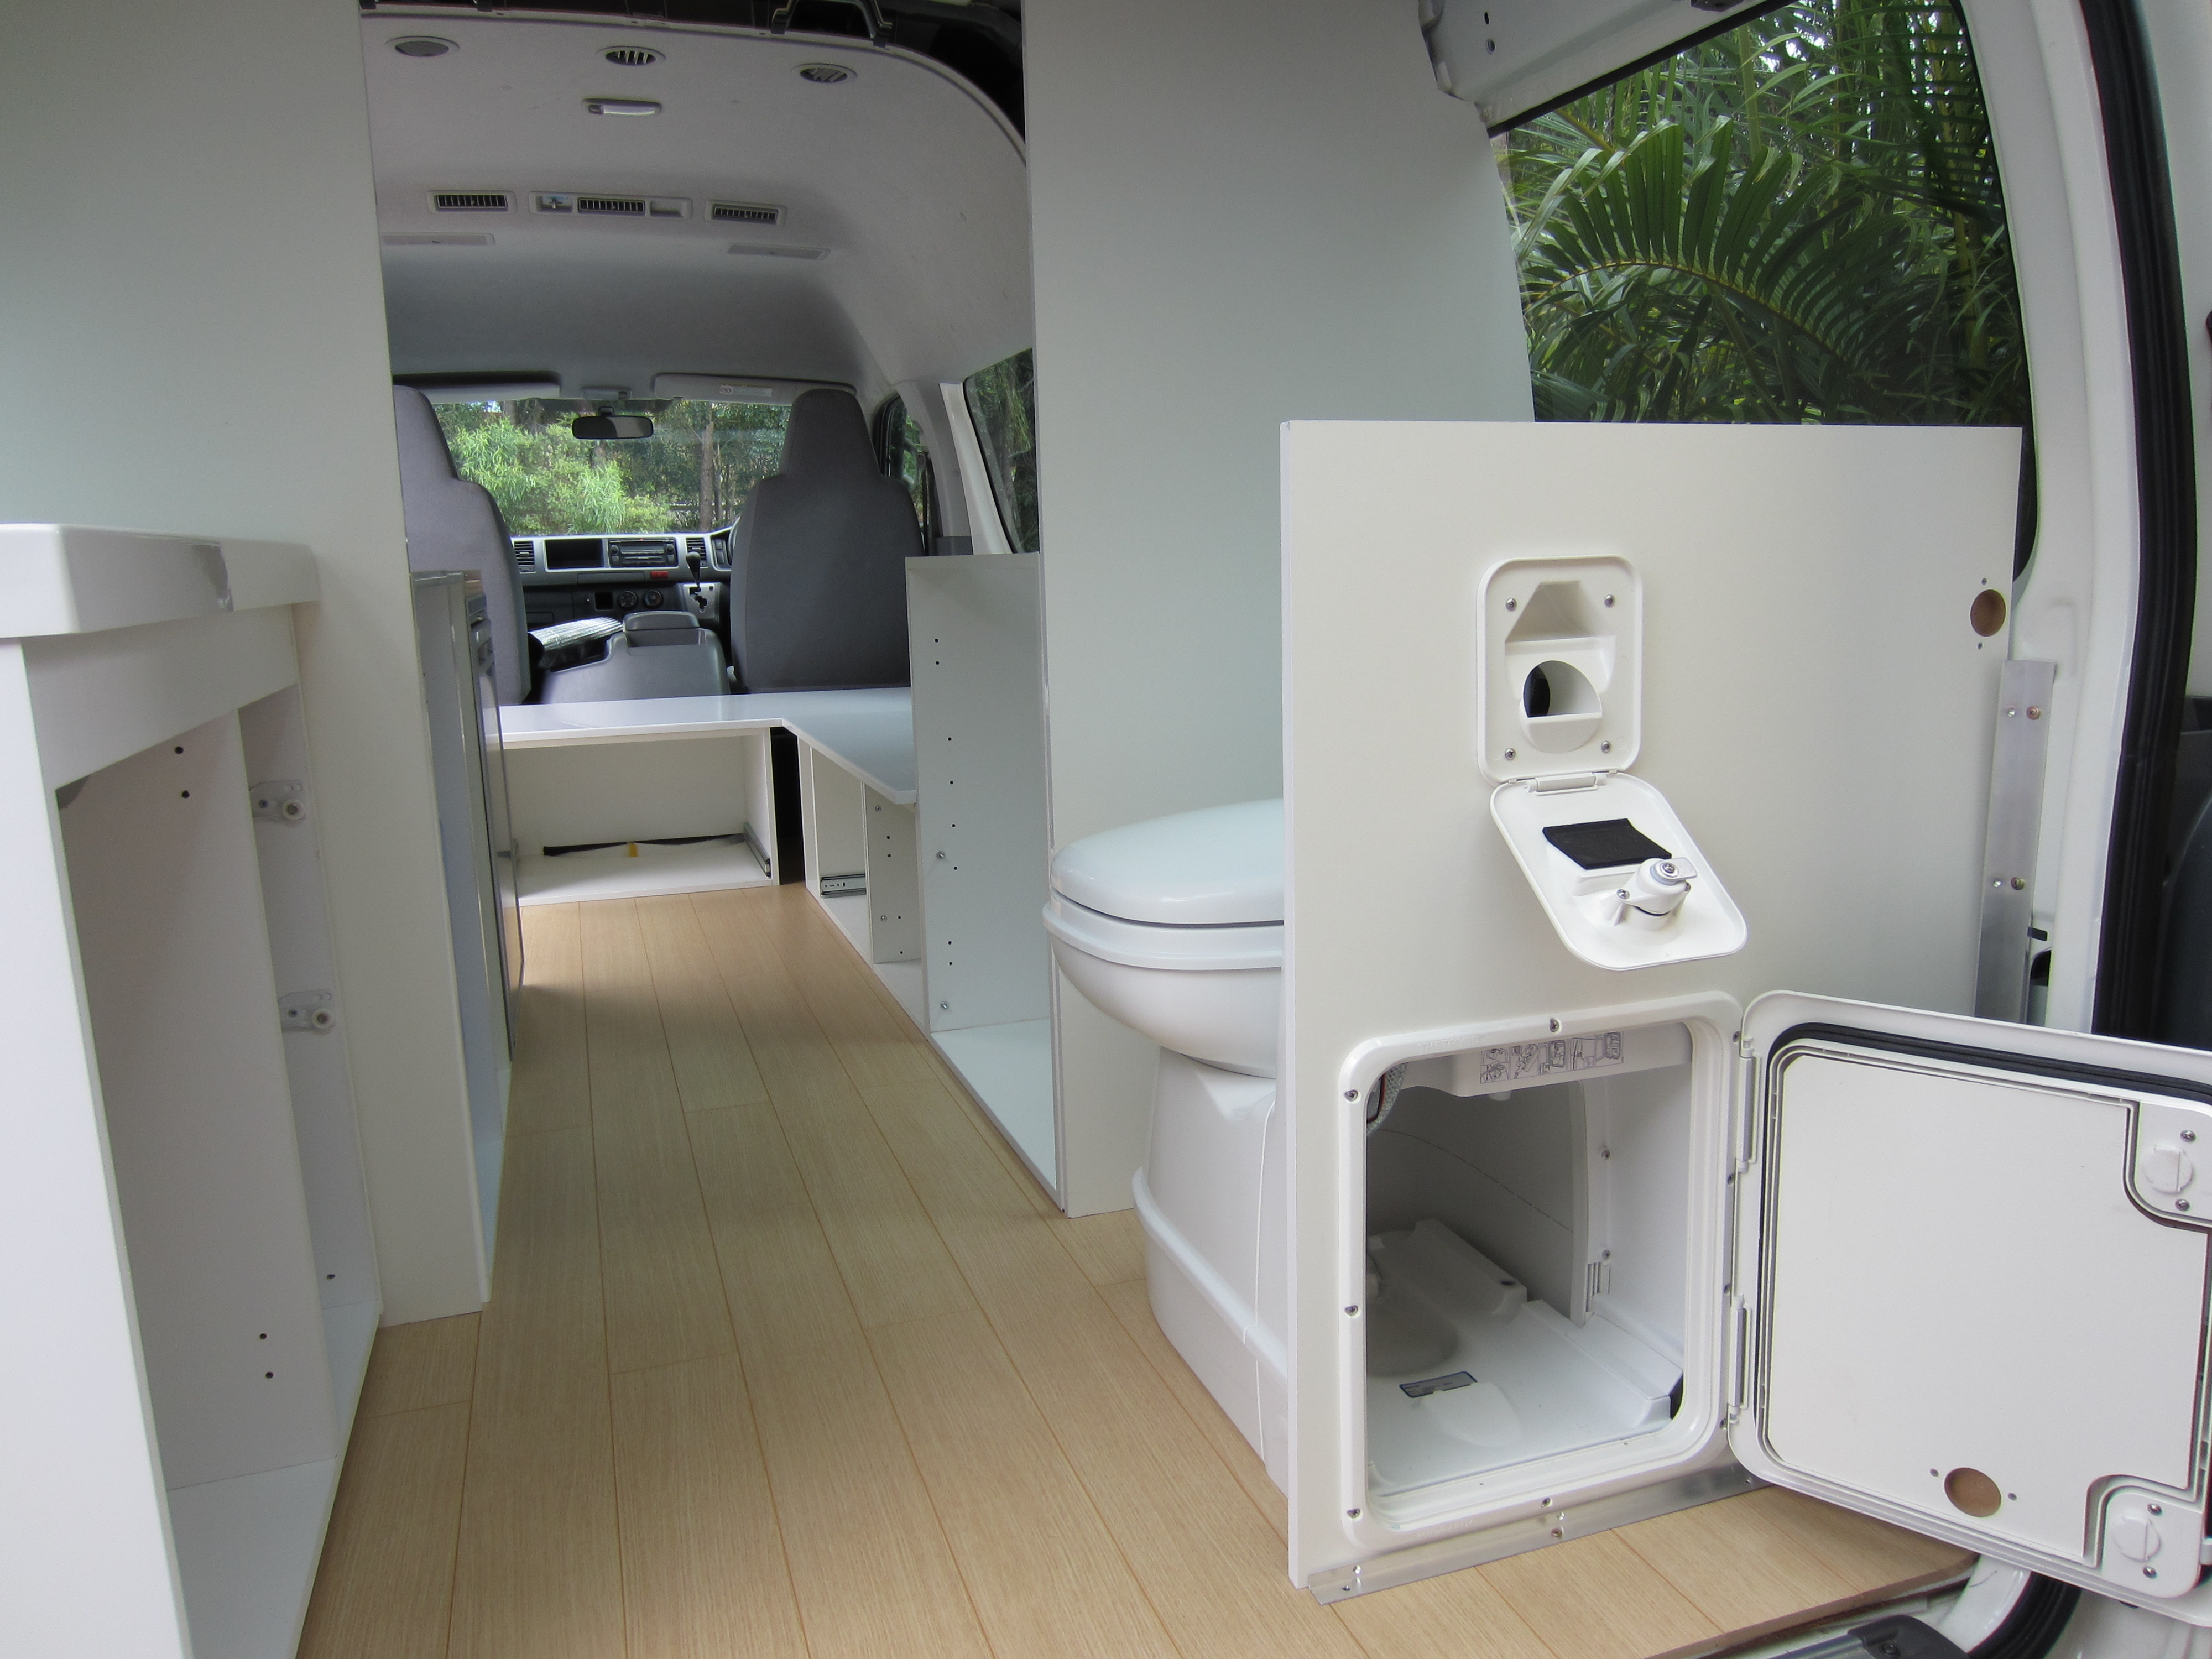 Campervan Kitchen And Cabinets The Campervan Converts